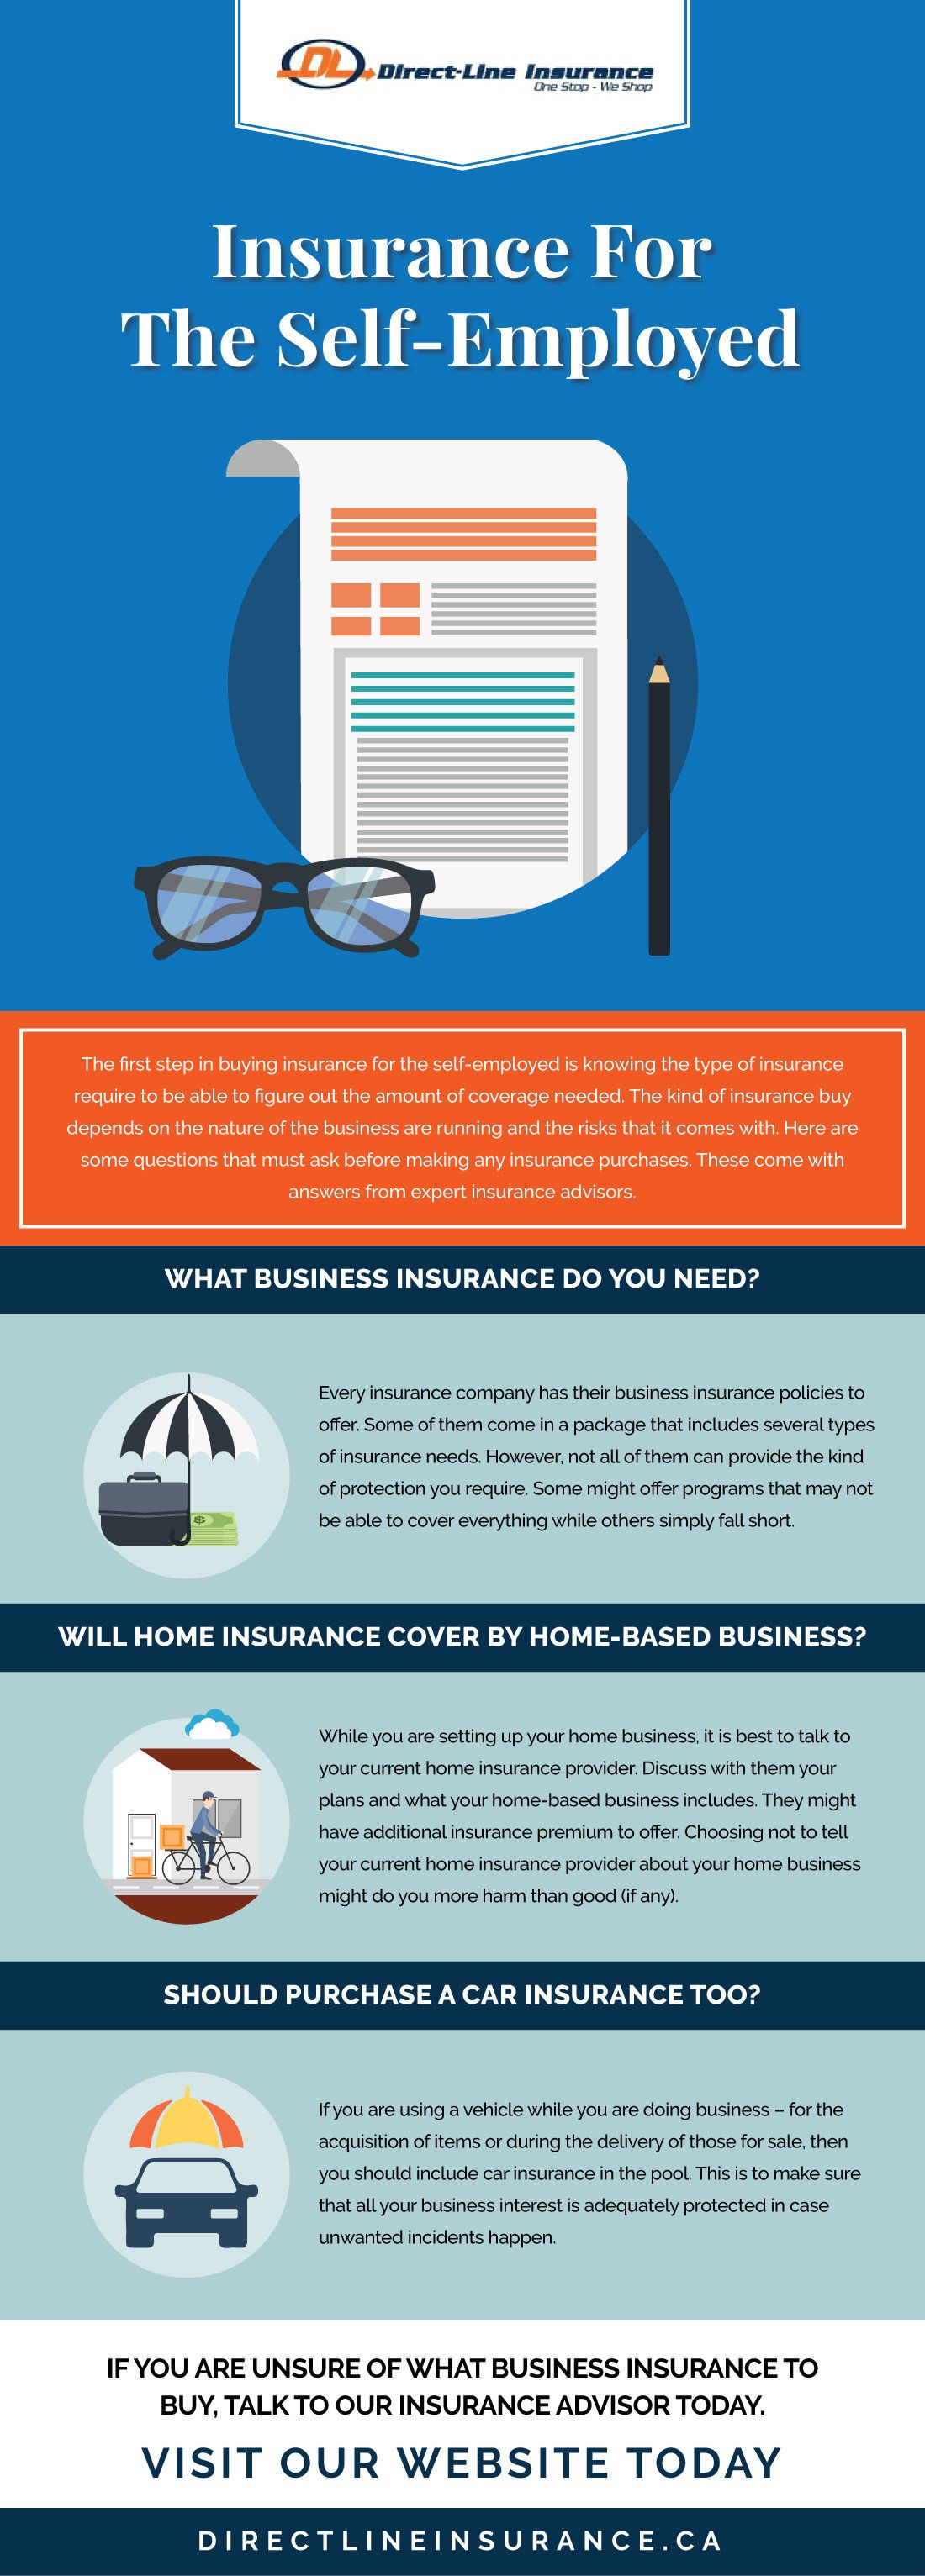 If you are a self-employed business insurance buyer, then ...